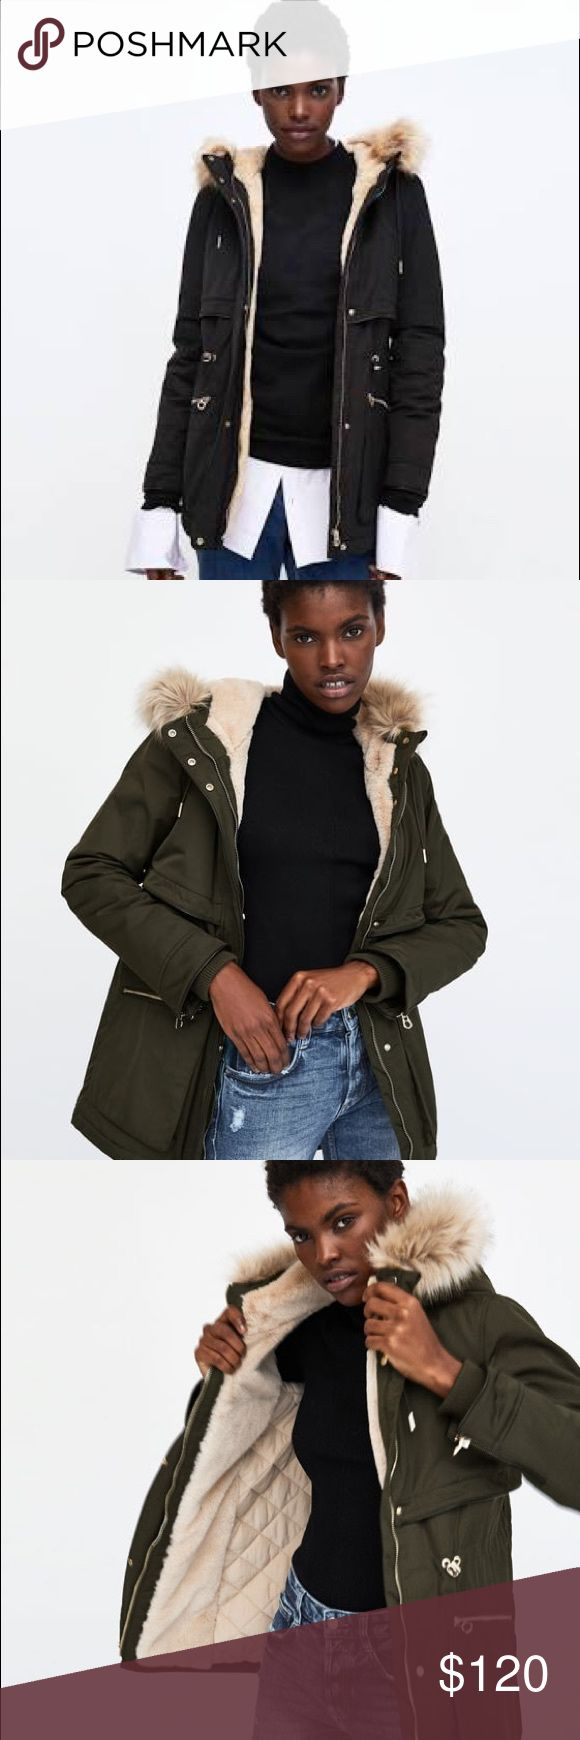 Zara coat new brand This a Zara winter coat new brand! I got some coats in different colors and I couldn't return them on time! This one is dark kaki, waterproof and very warm! Zara Jackets & Coats